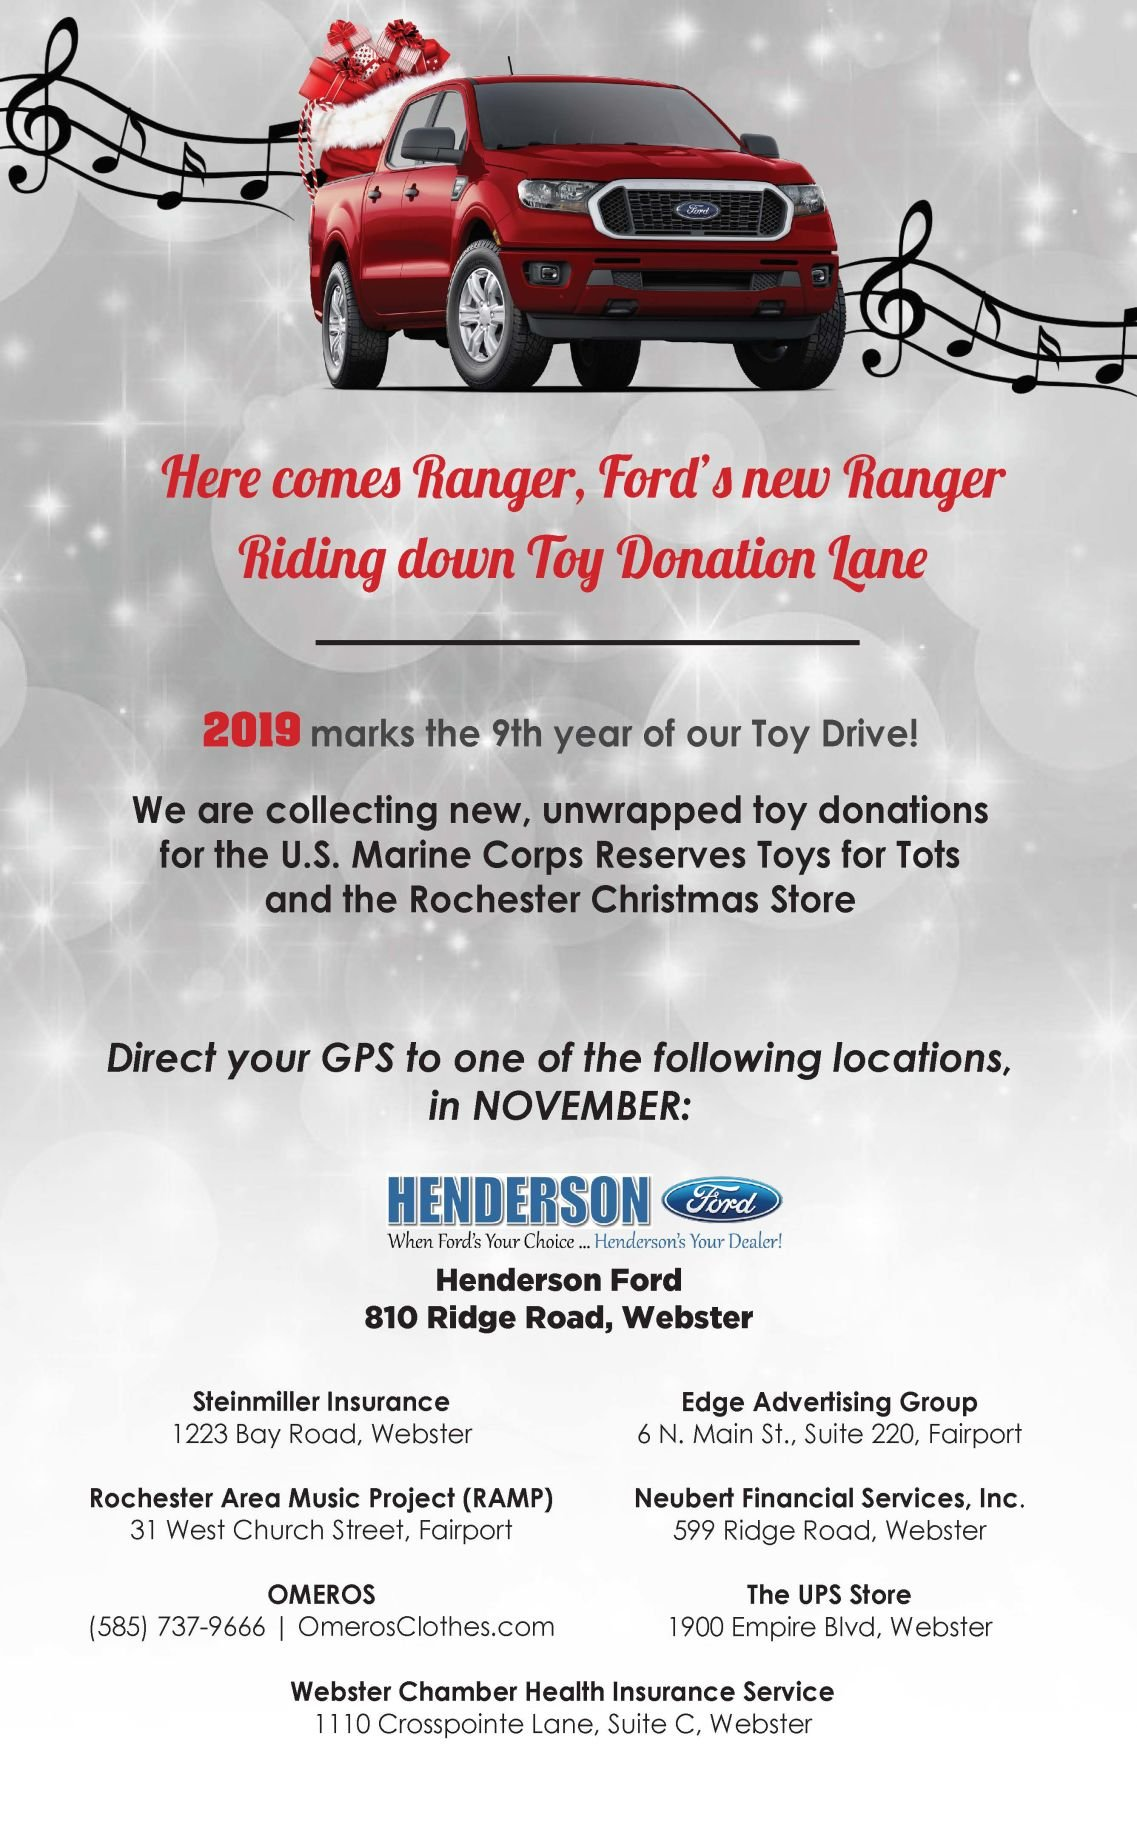 HENDERSON FORD RIDING DOWN TOY DONATION LANE